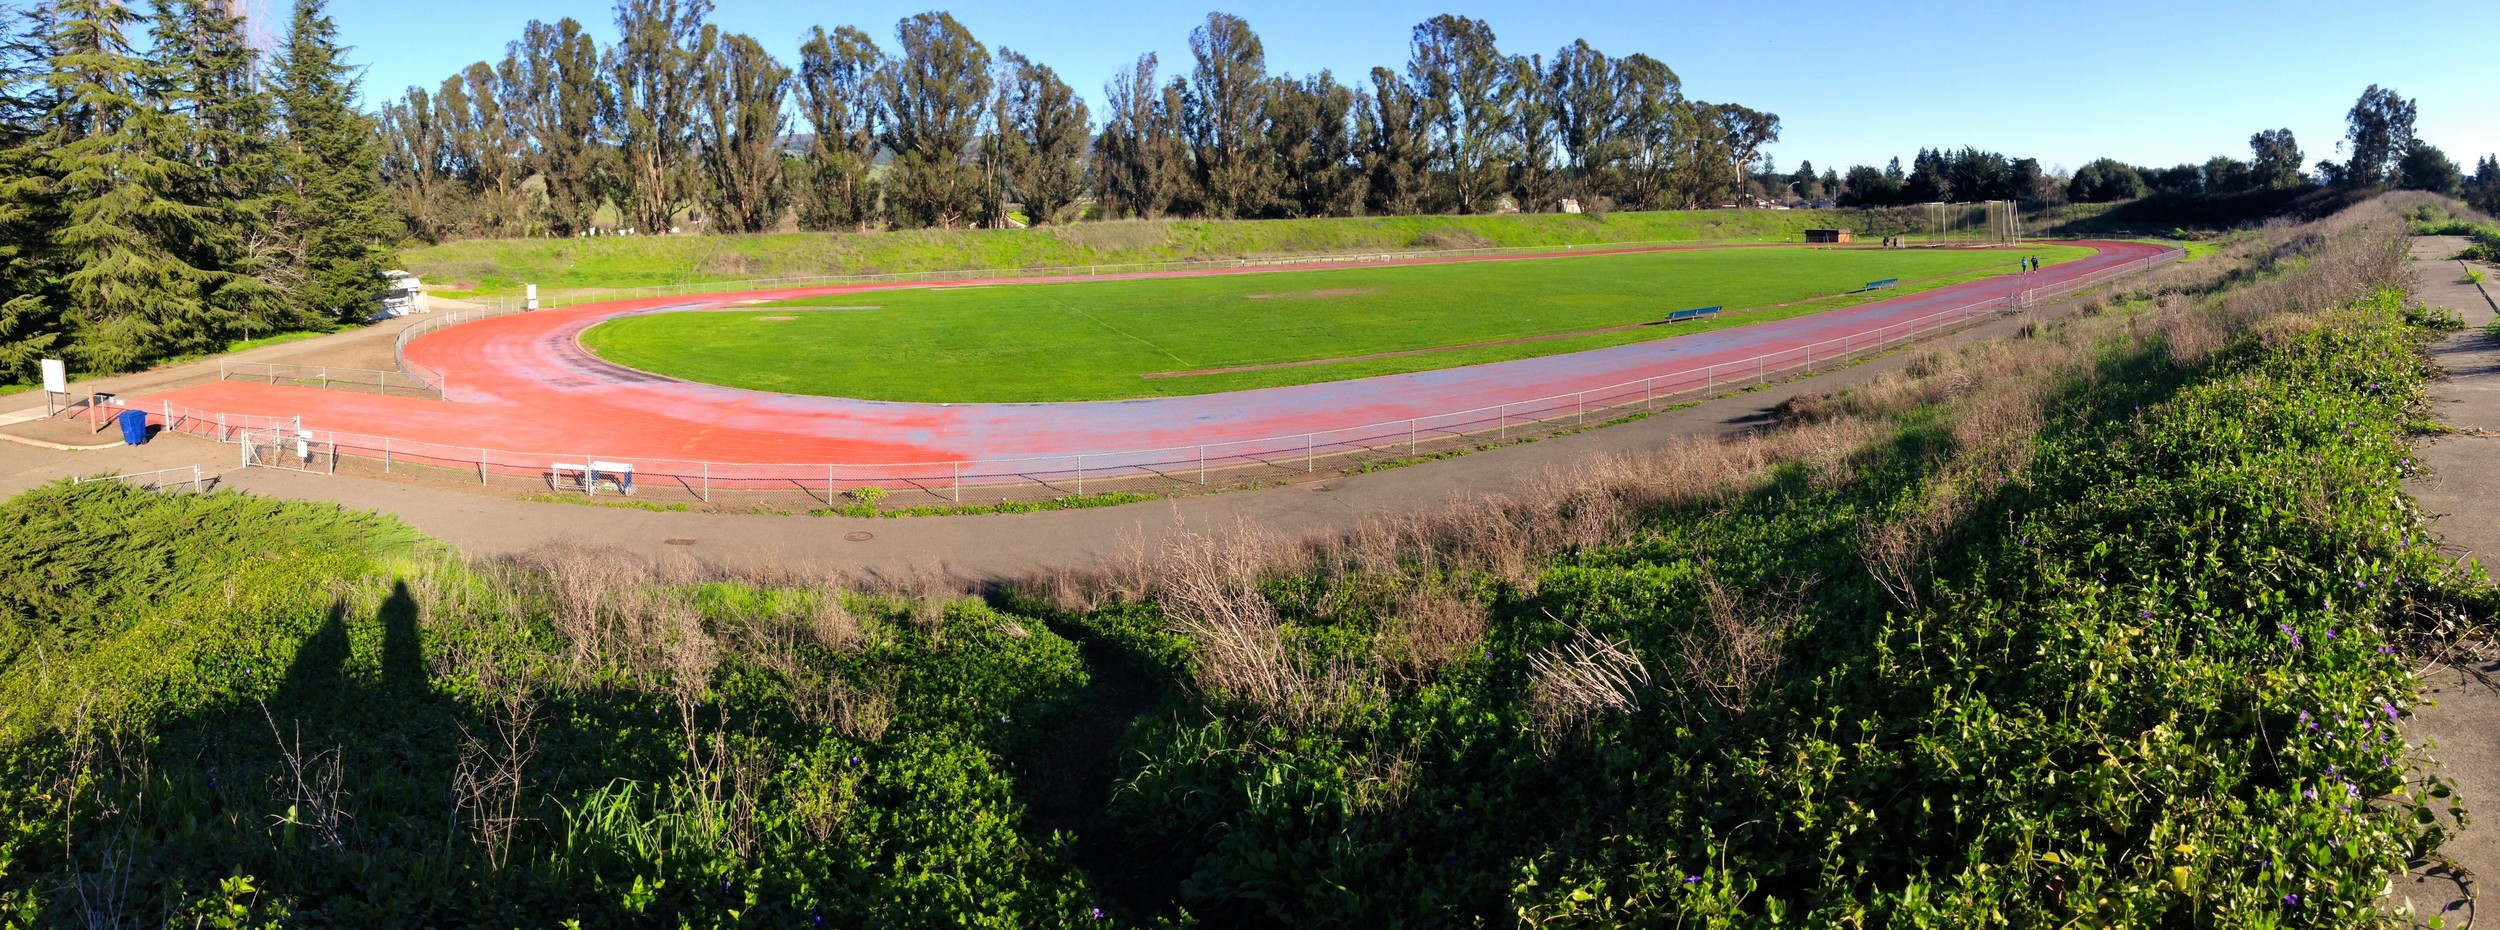 STAR // Niquie Wilson   Sonoma State University's women's track and field team was disbanded after a lack of interest from student-athletes and lack of adequate facilities in 2007. In the summer it was announced the team would return to Sonoma State after much interest from the student body.